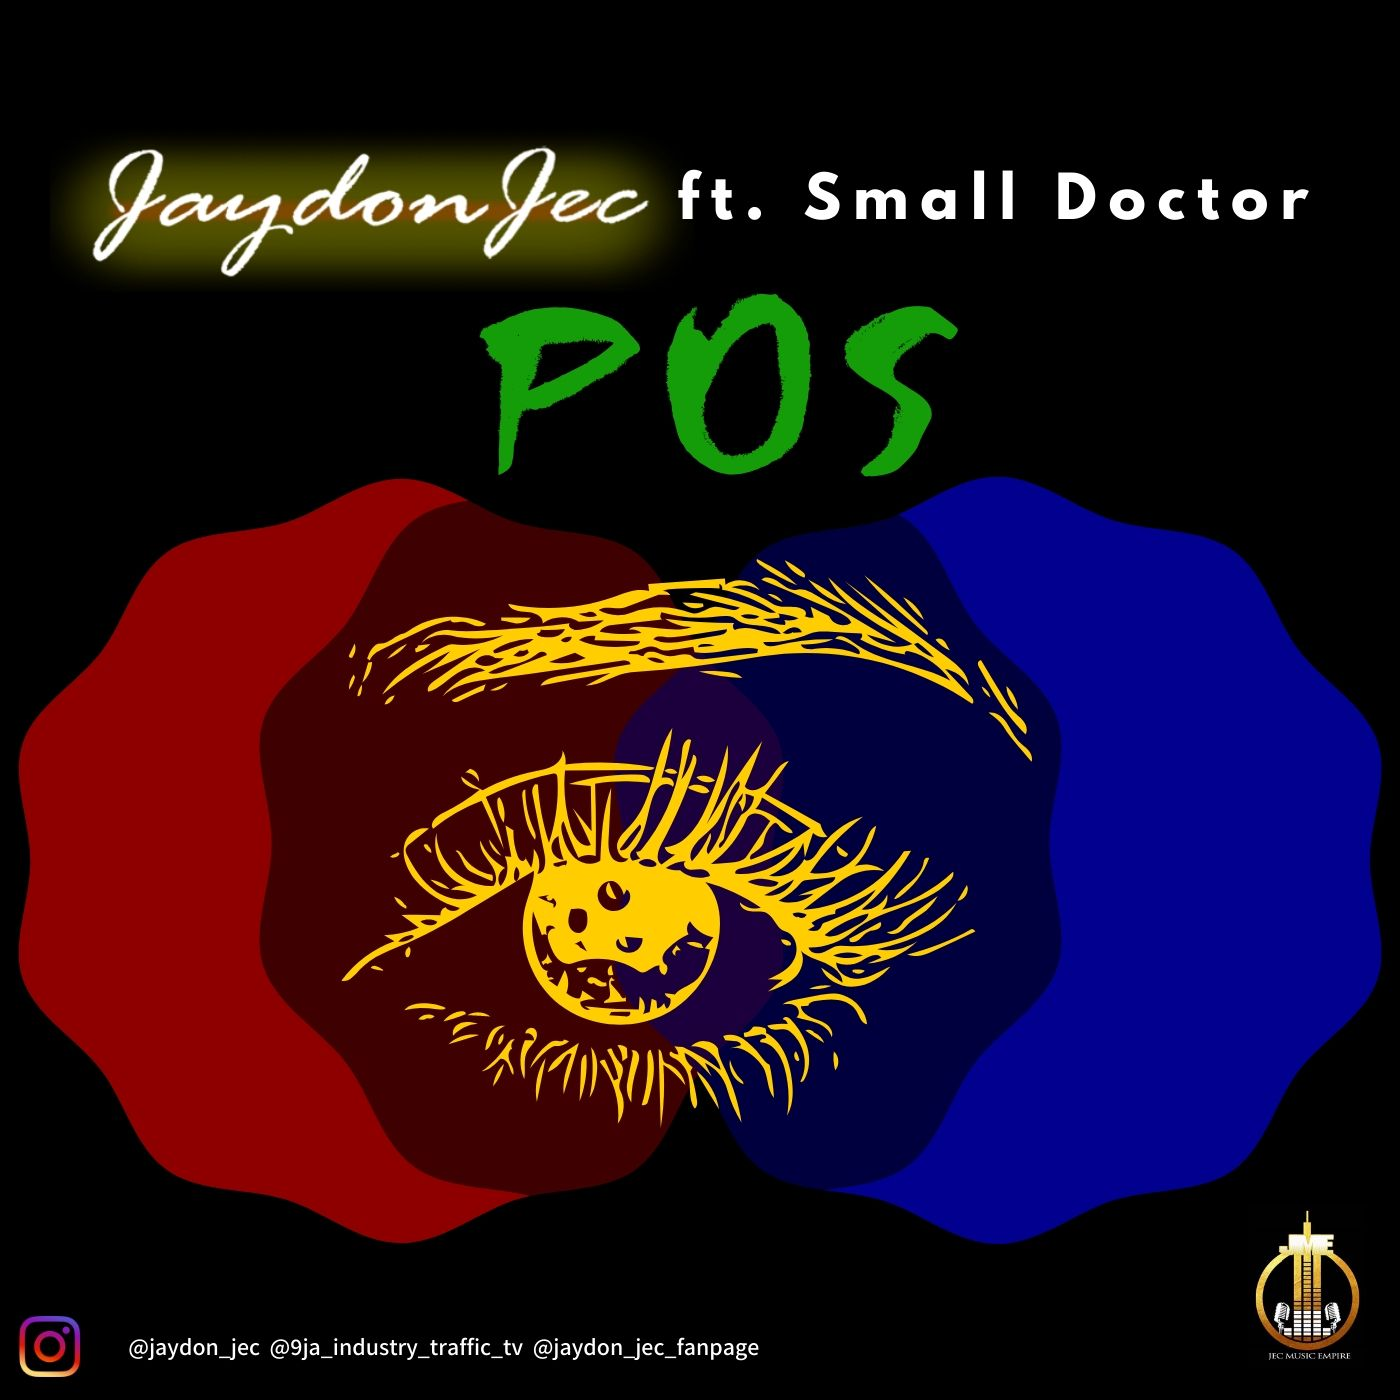 POS by Jaydon Jec ft. Small Doctor